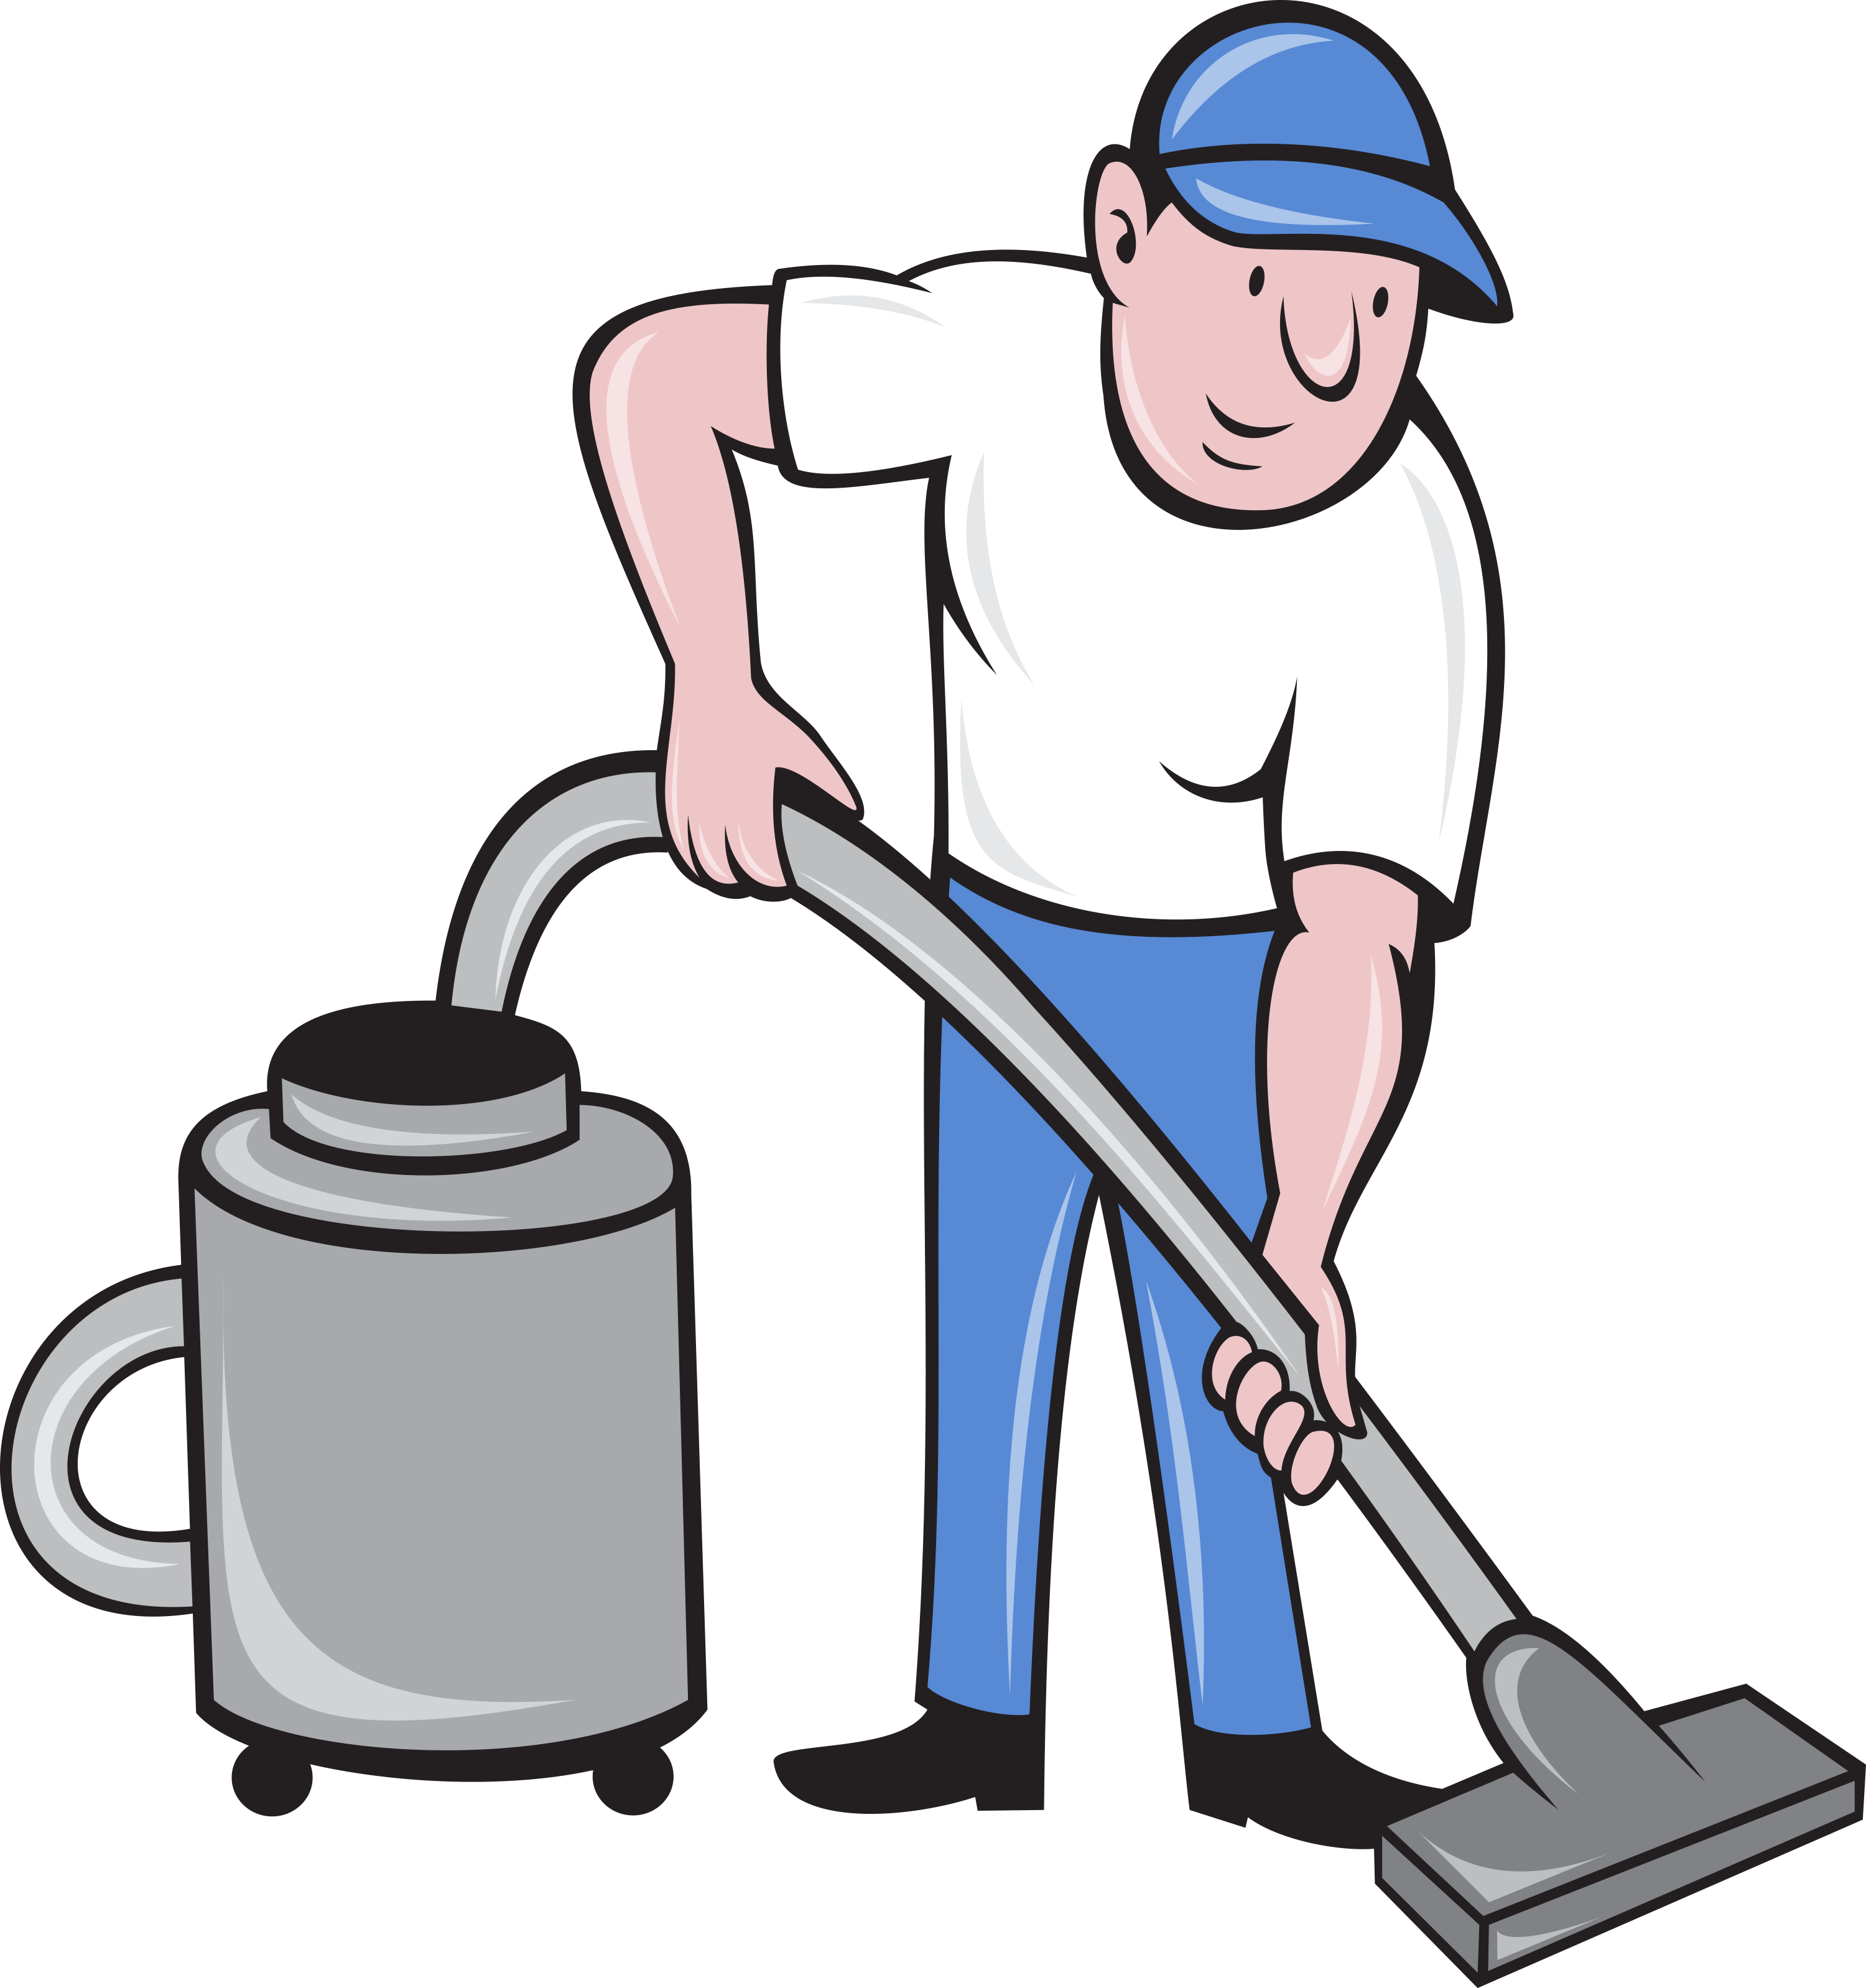 Clean clipart male clean. Cleaner vacuuming vacuum cleaning